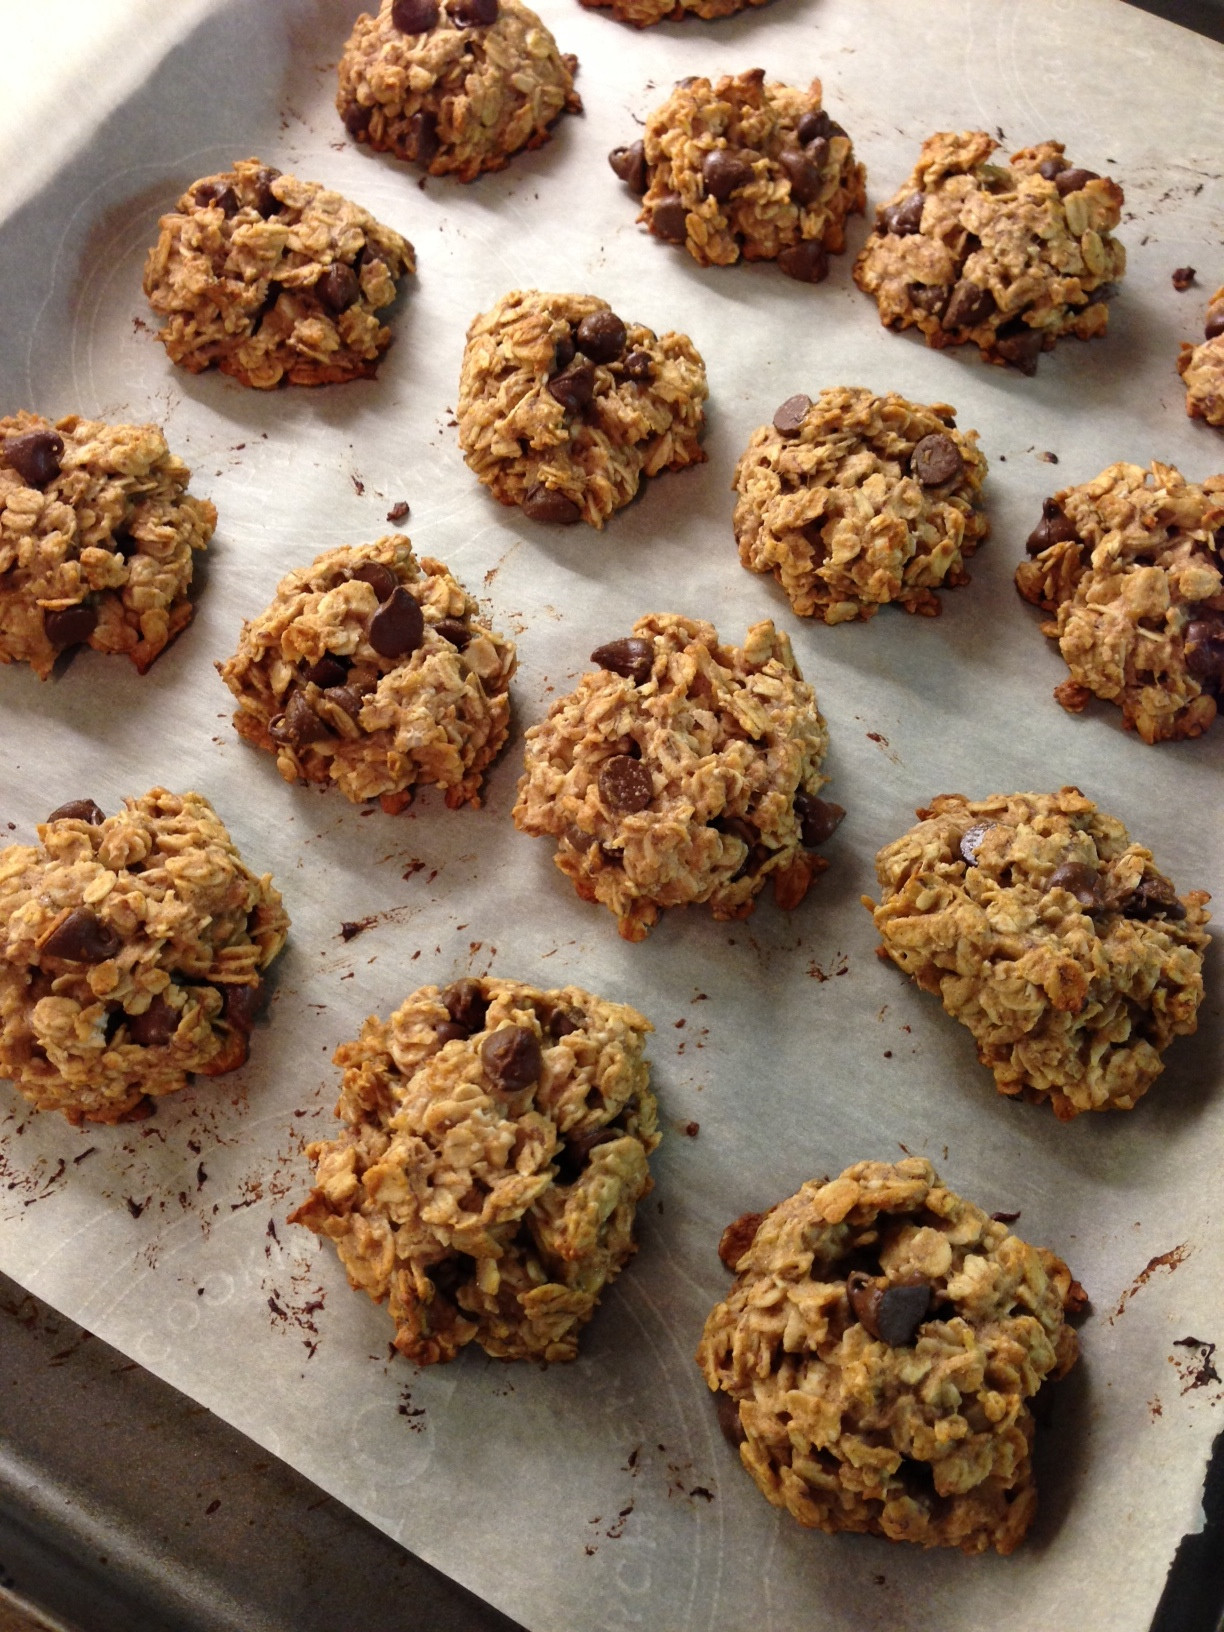 Healthy Oatmeal Chocolate Chip Cookies  Healthy Oatmeal Chocolate Chip Cookies Lauren Follett